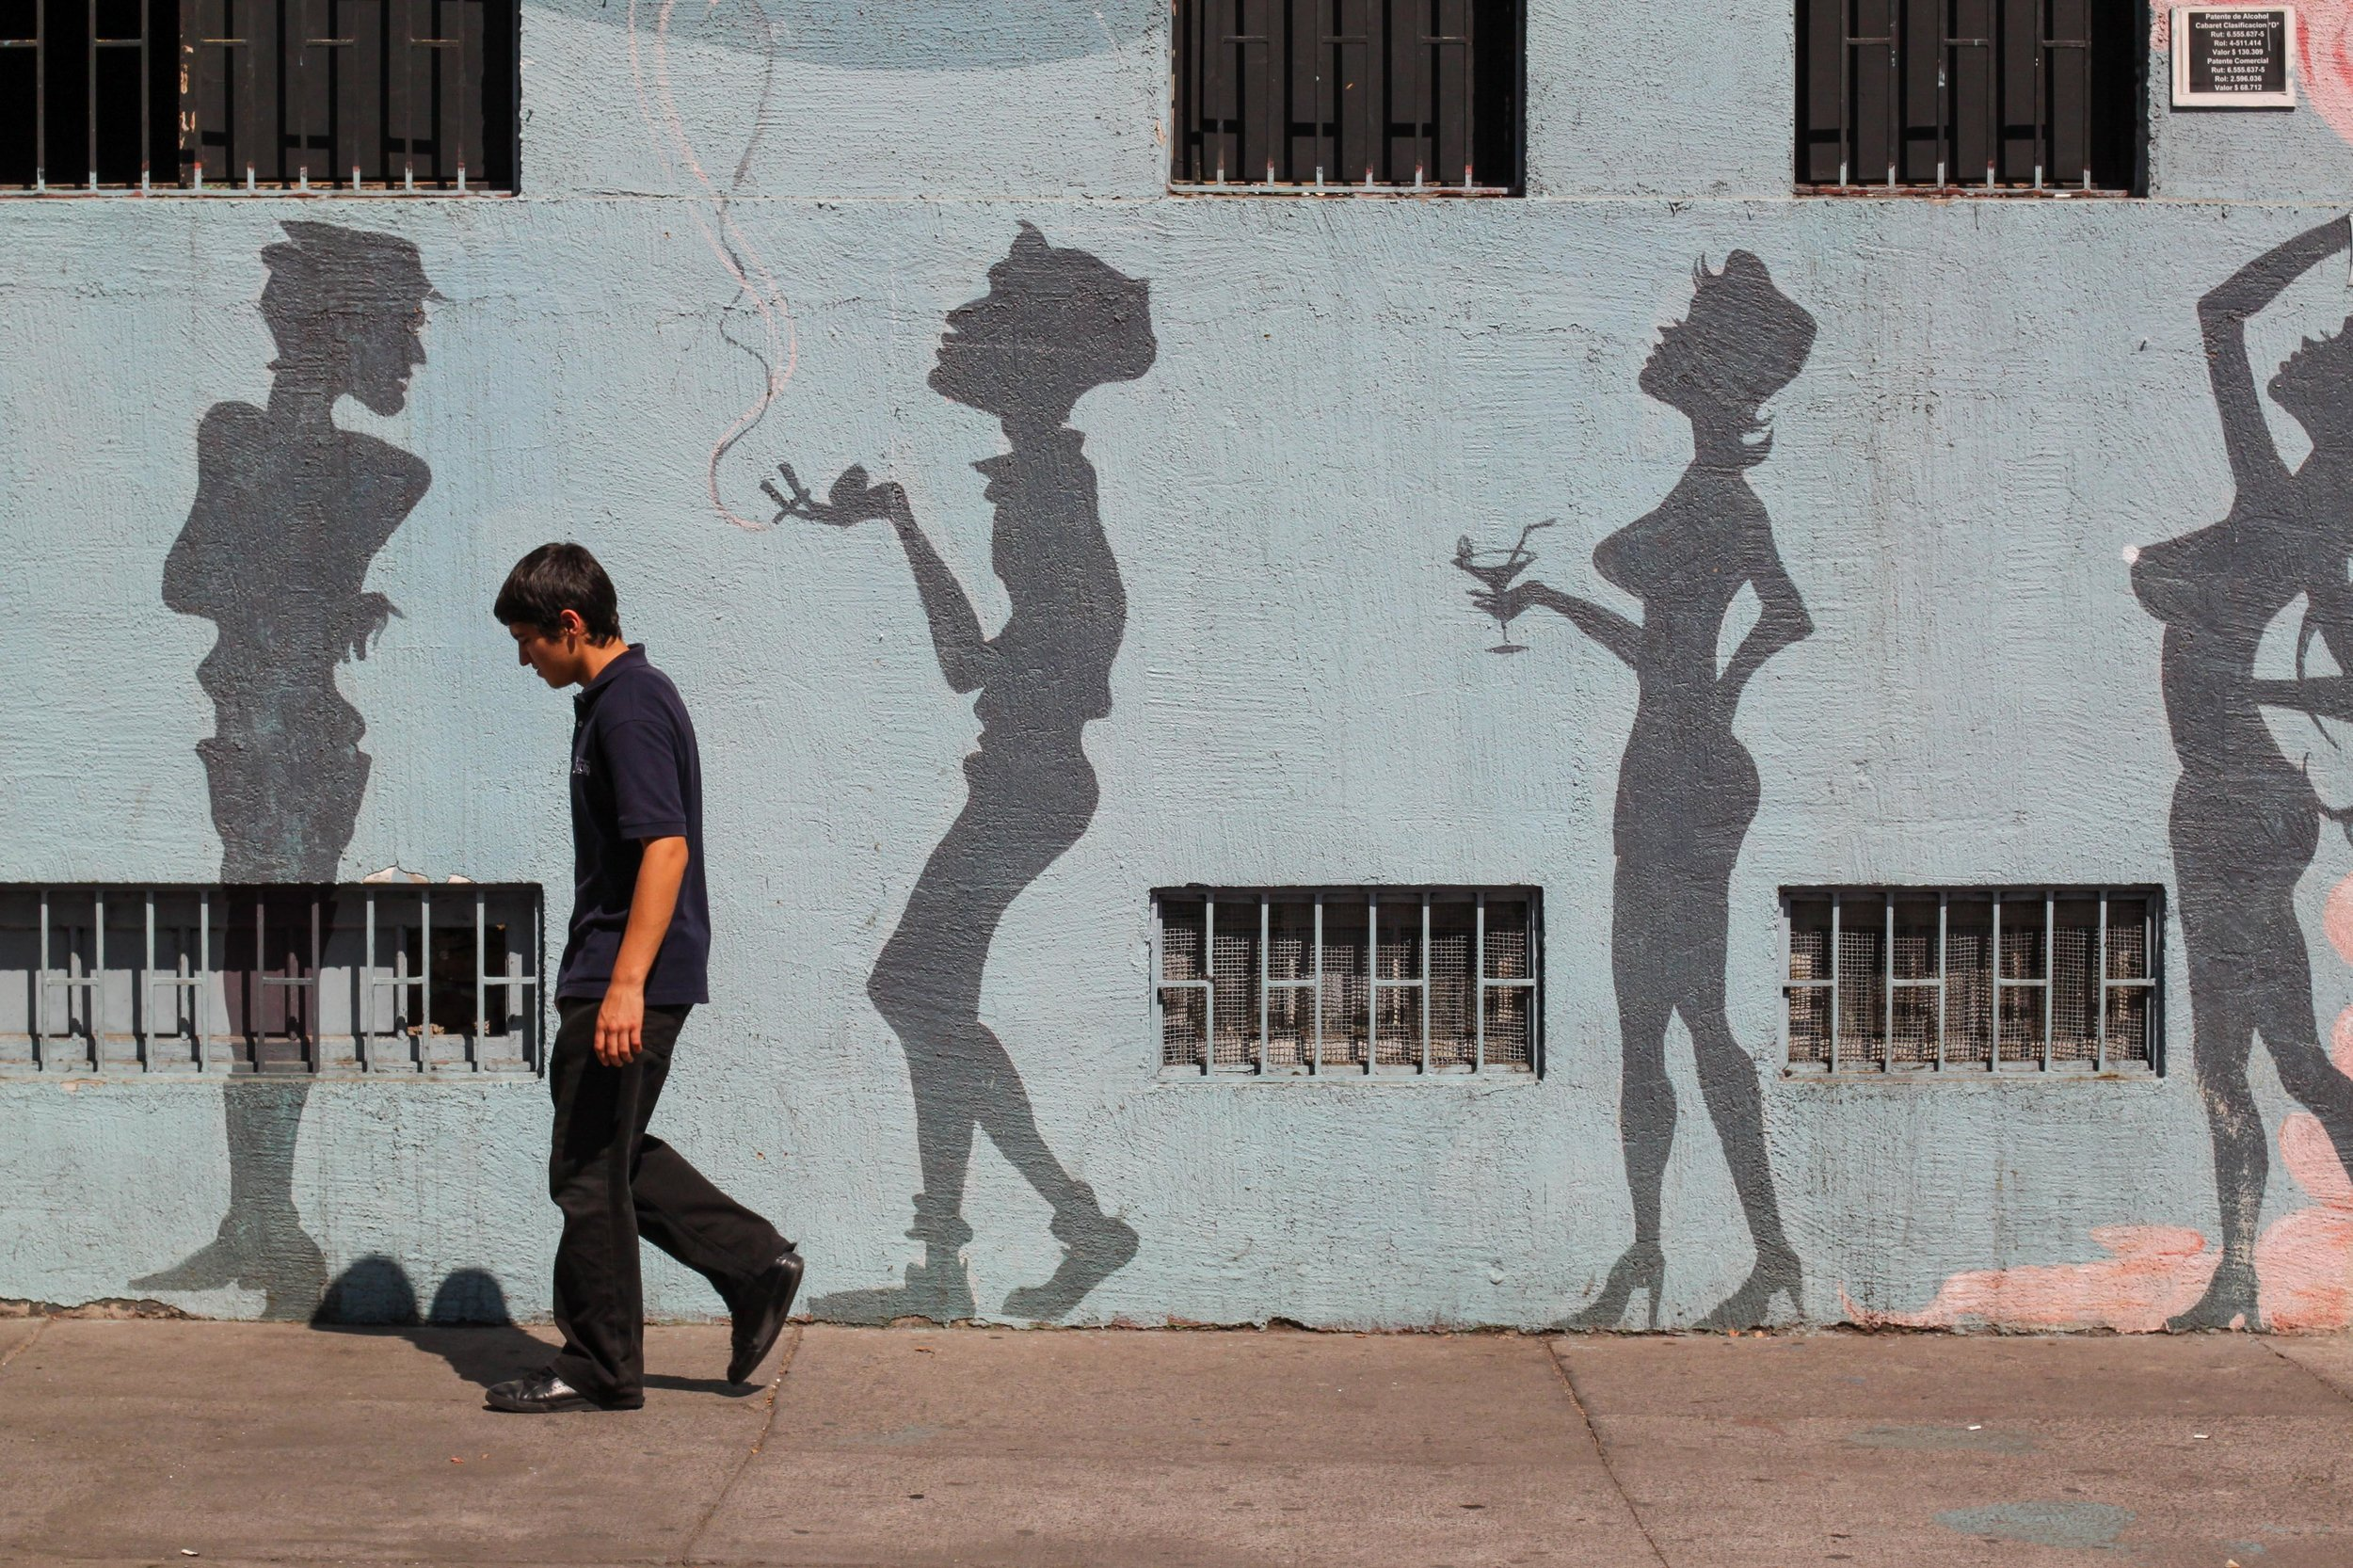 Street Art & street photography in Santiago, Chile.